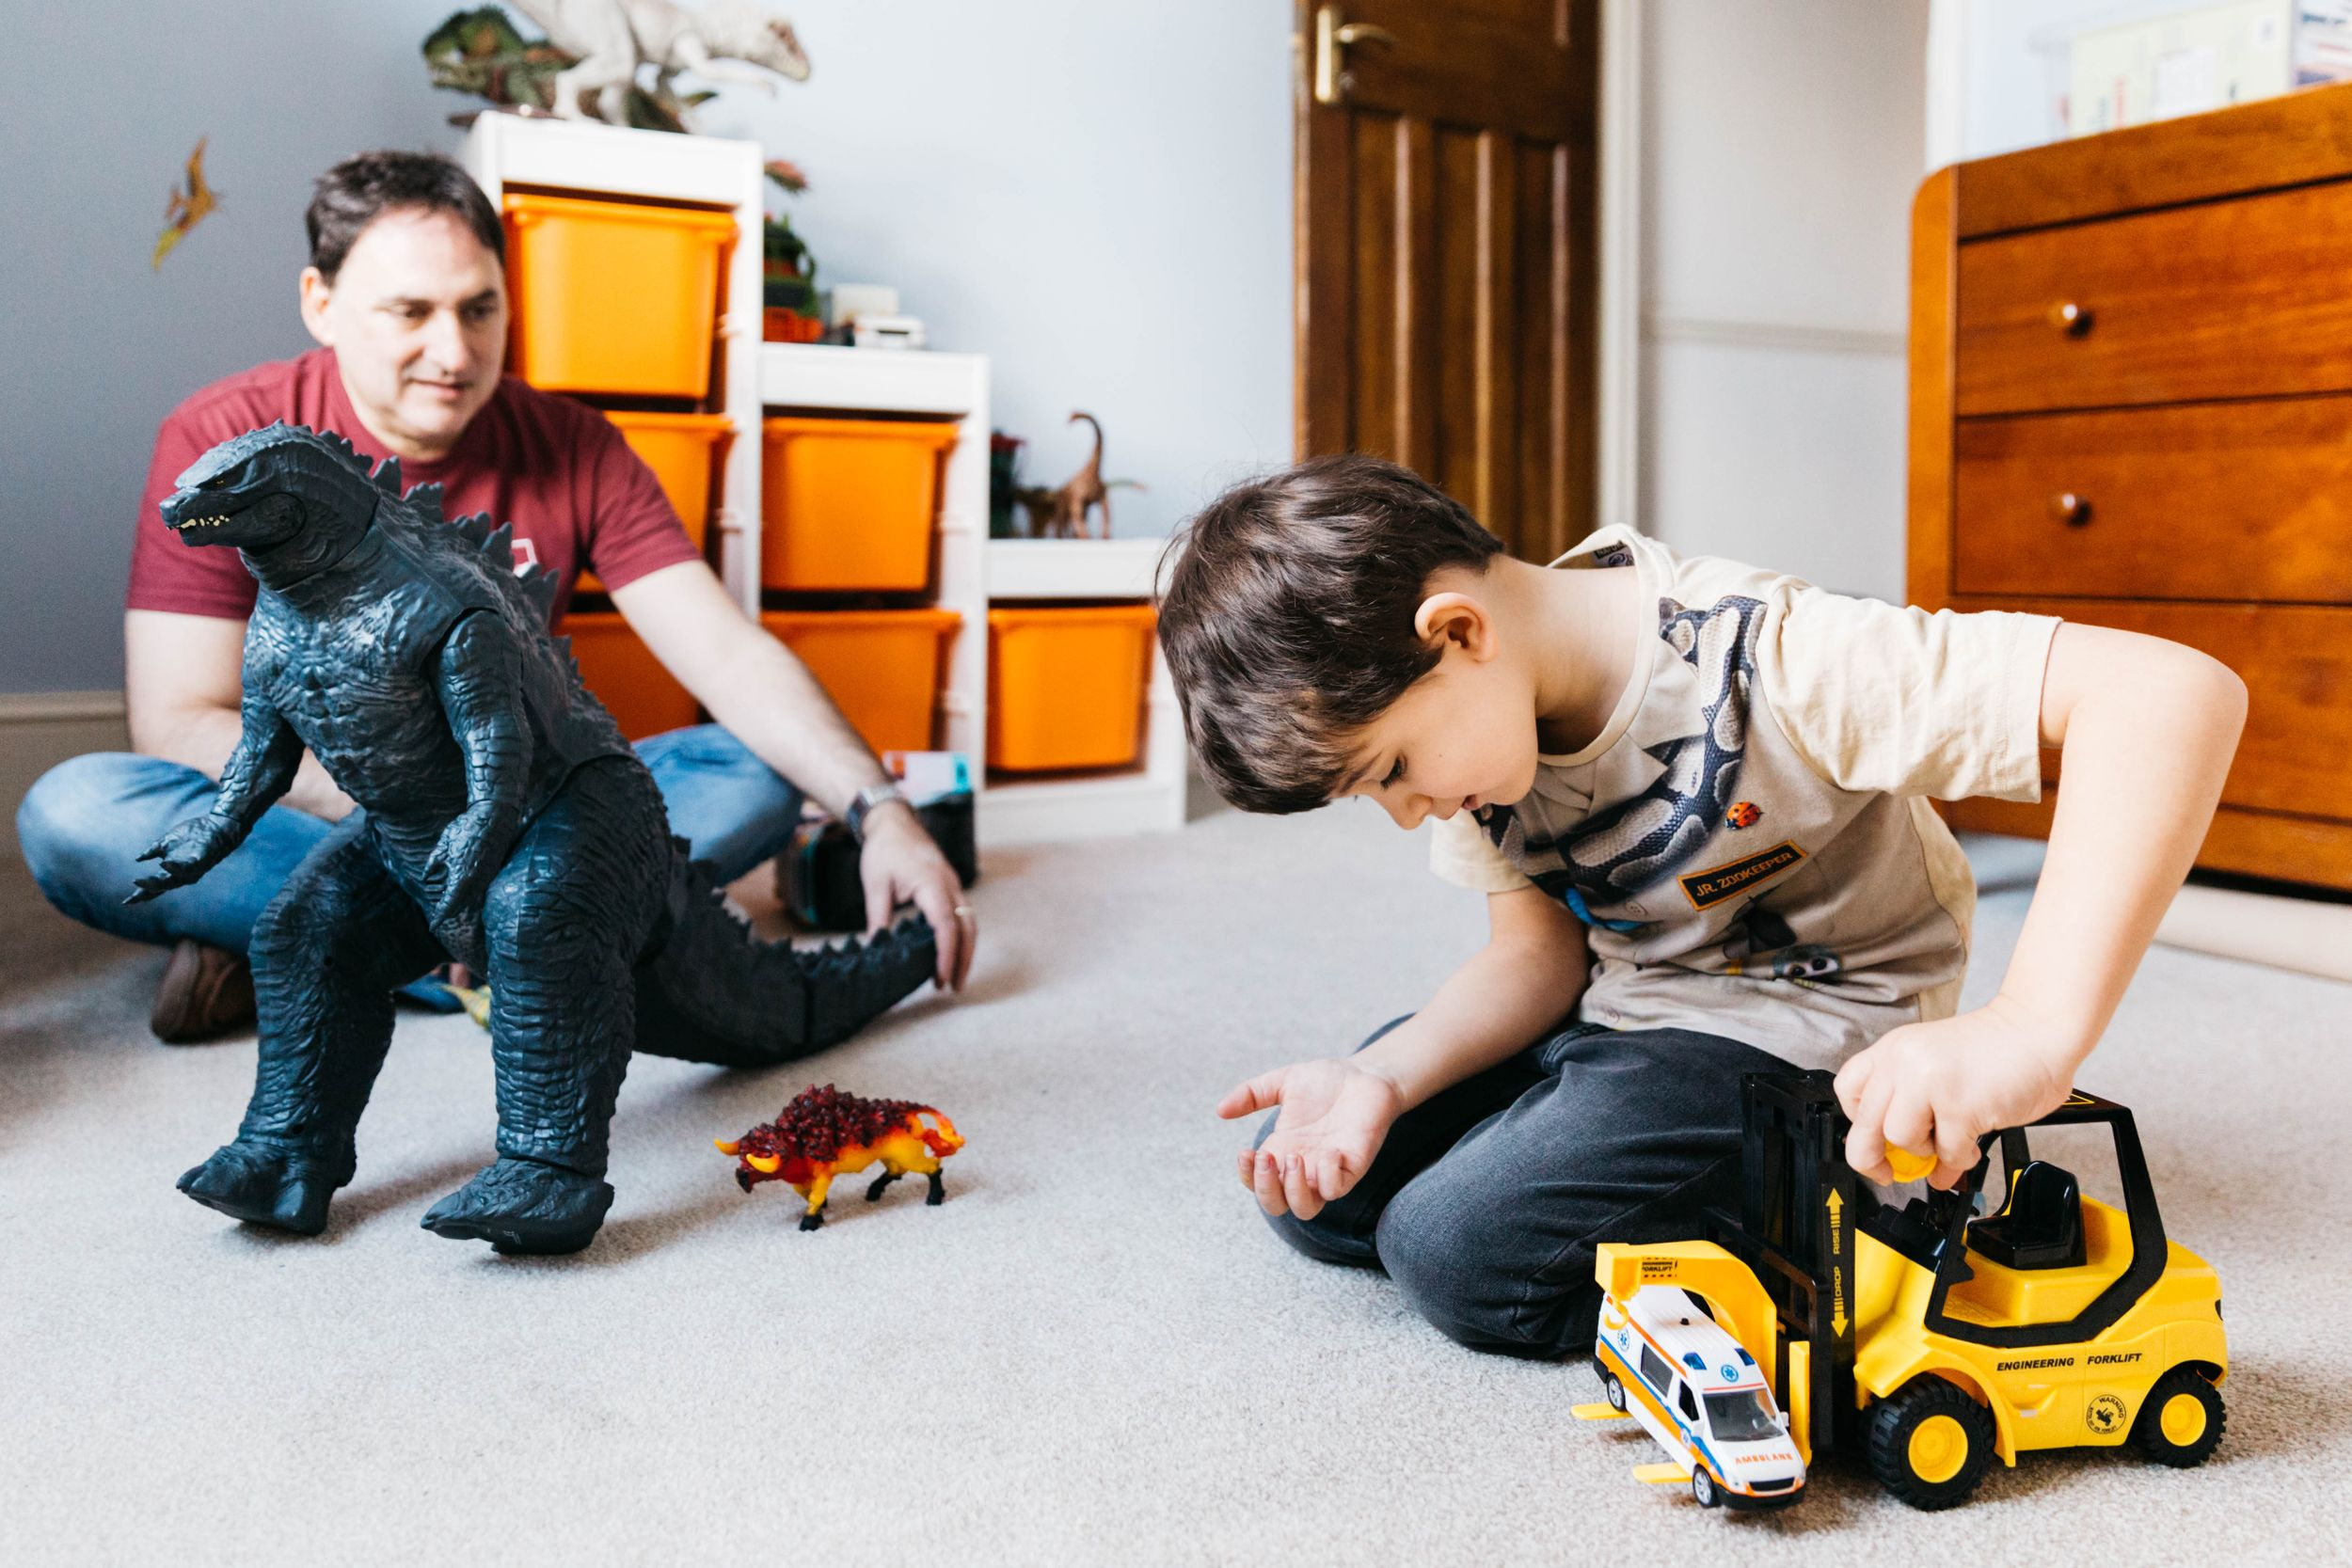 dad and son playing with dinosaurs cars in bedroom